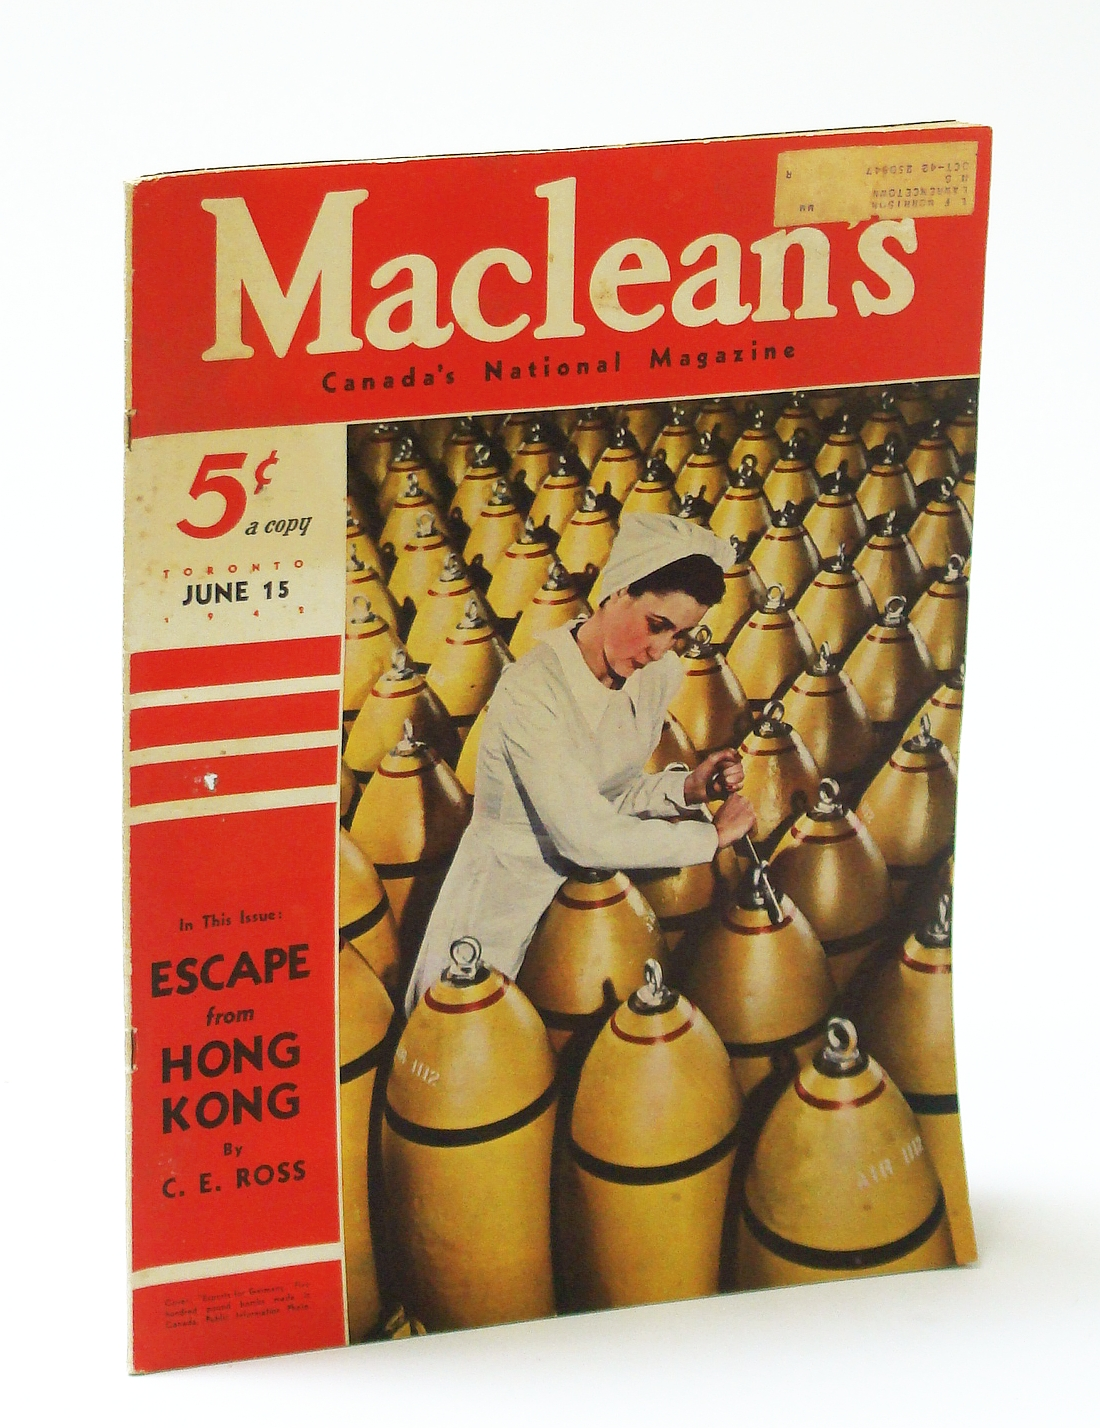 Image for Maclean's, Canada's National Magazine, June 15, 1942, Vol. 55, No. 12 - Escape From Hong Kong